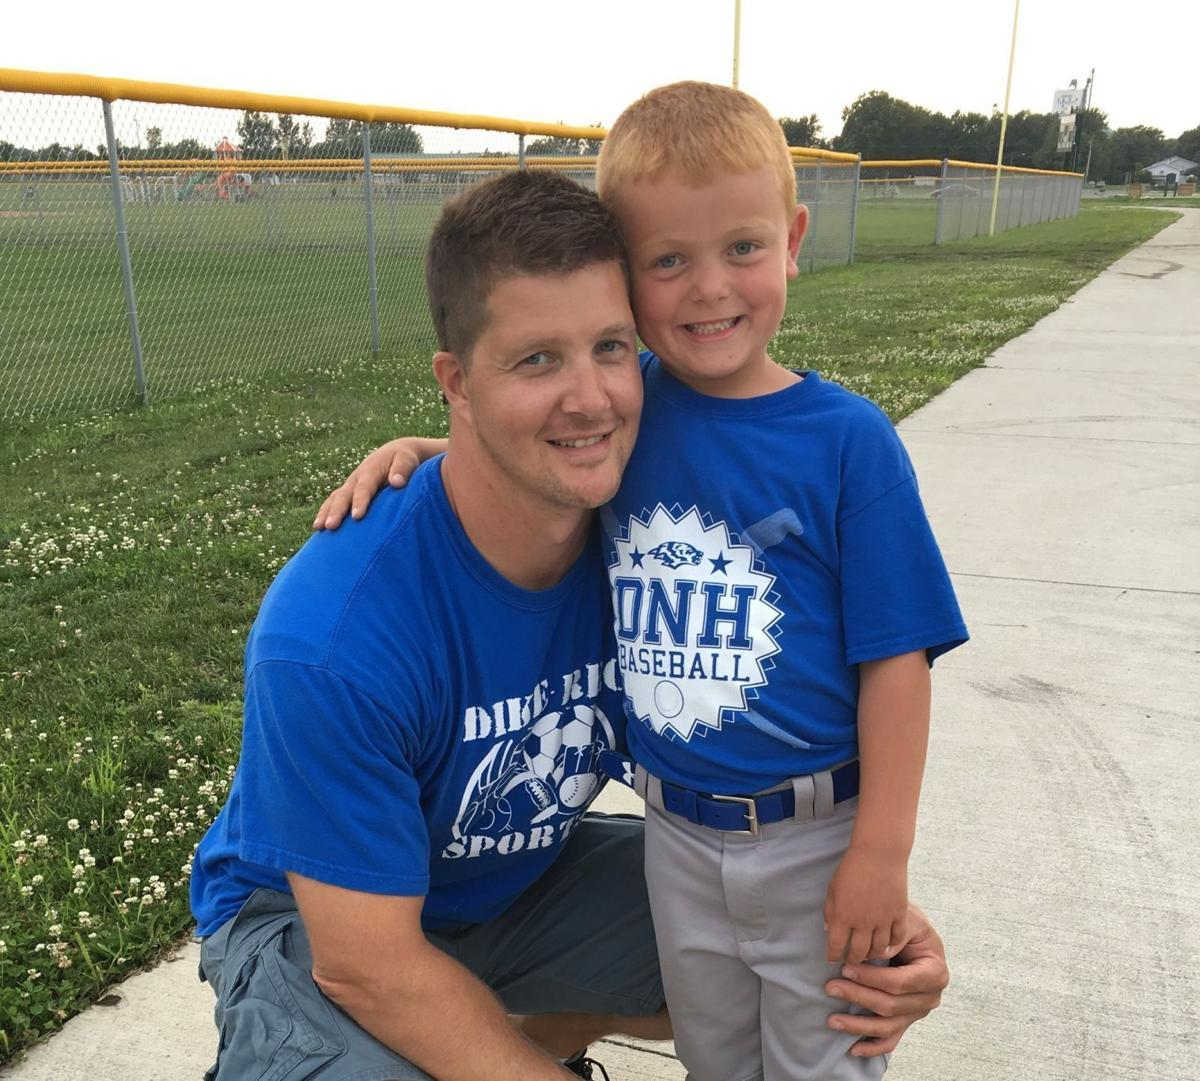 This father and son are killed in a tragic barn collapse